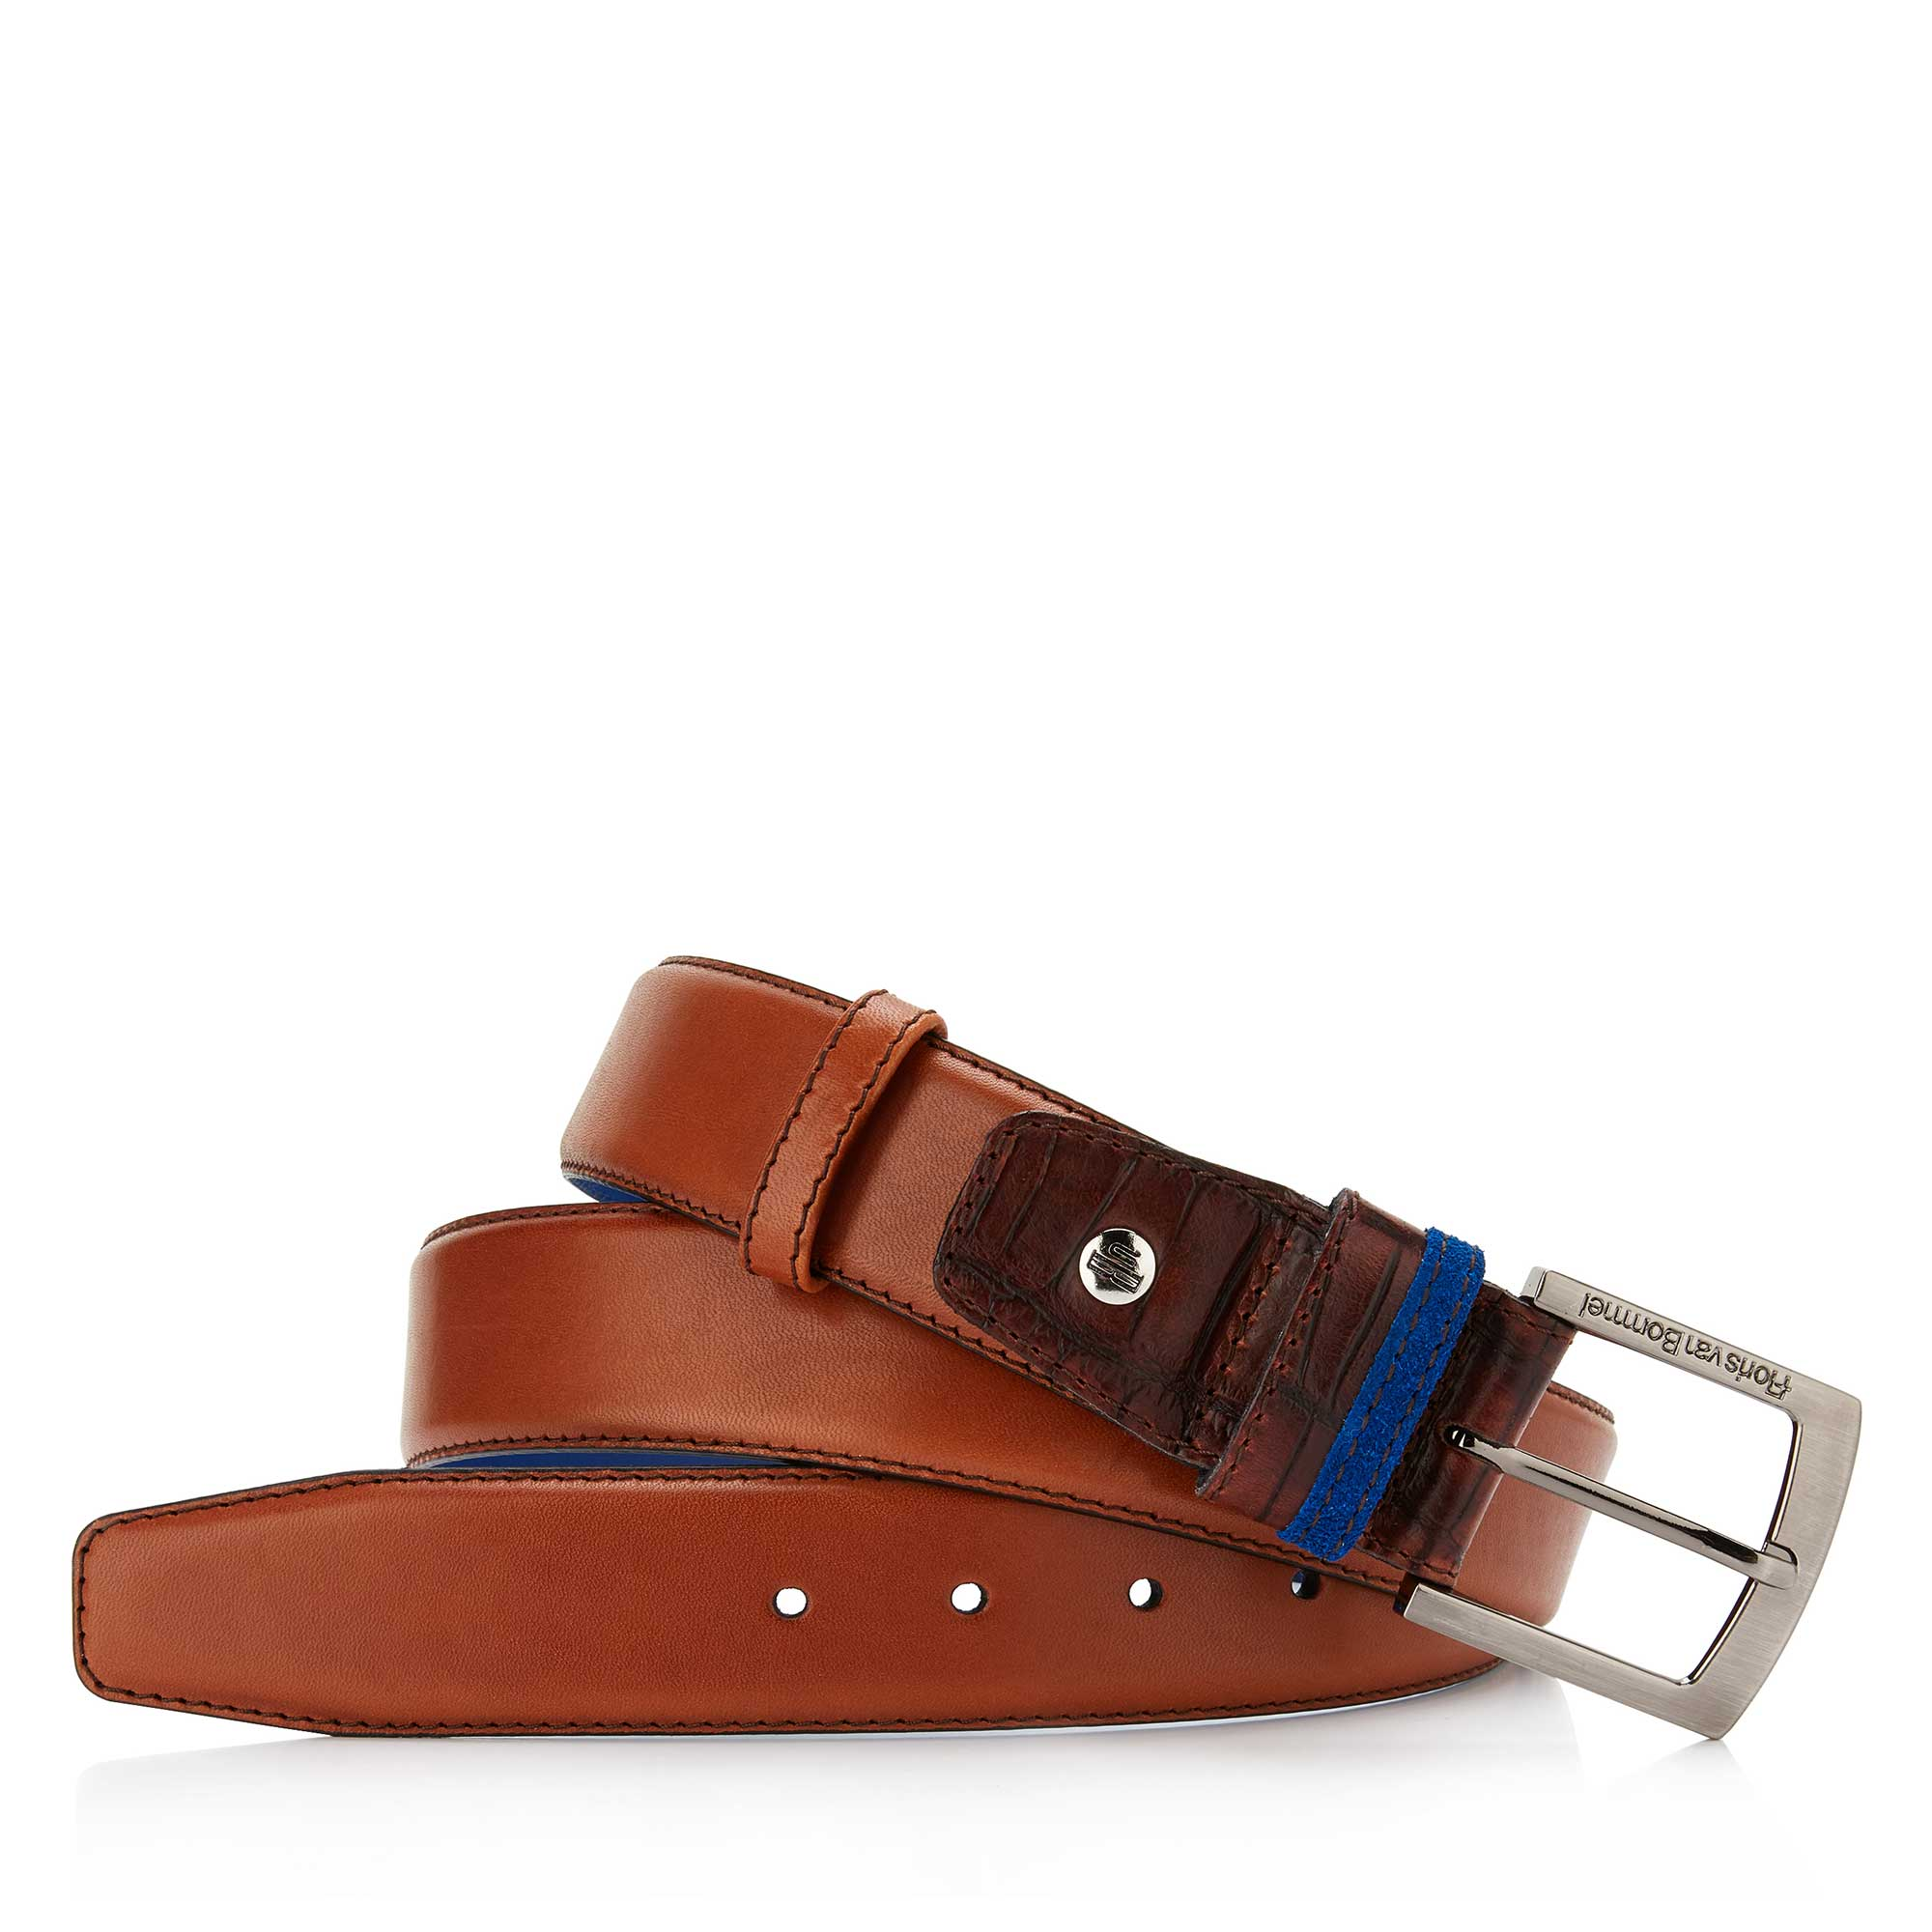 75004/01 - Cognac-coloured leather belt